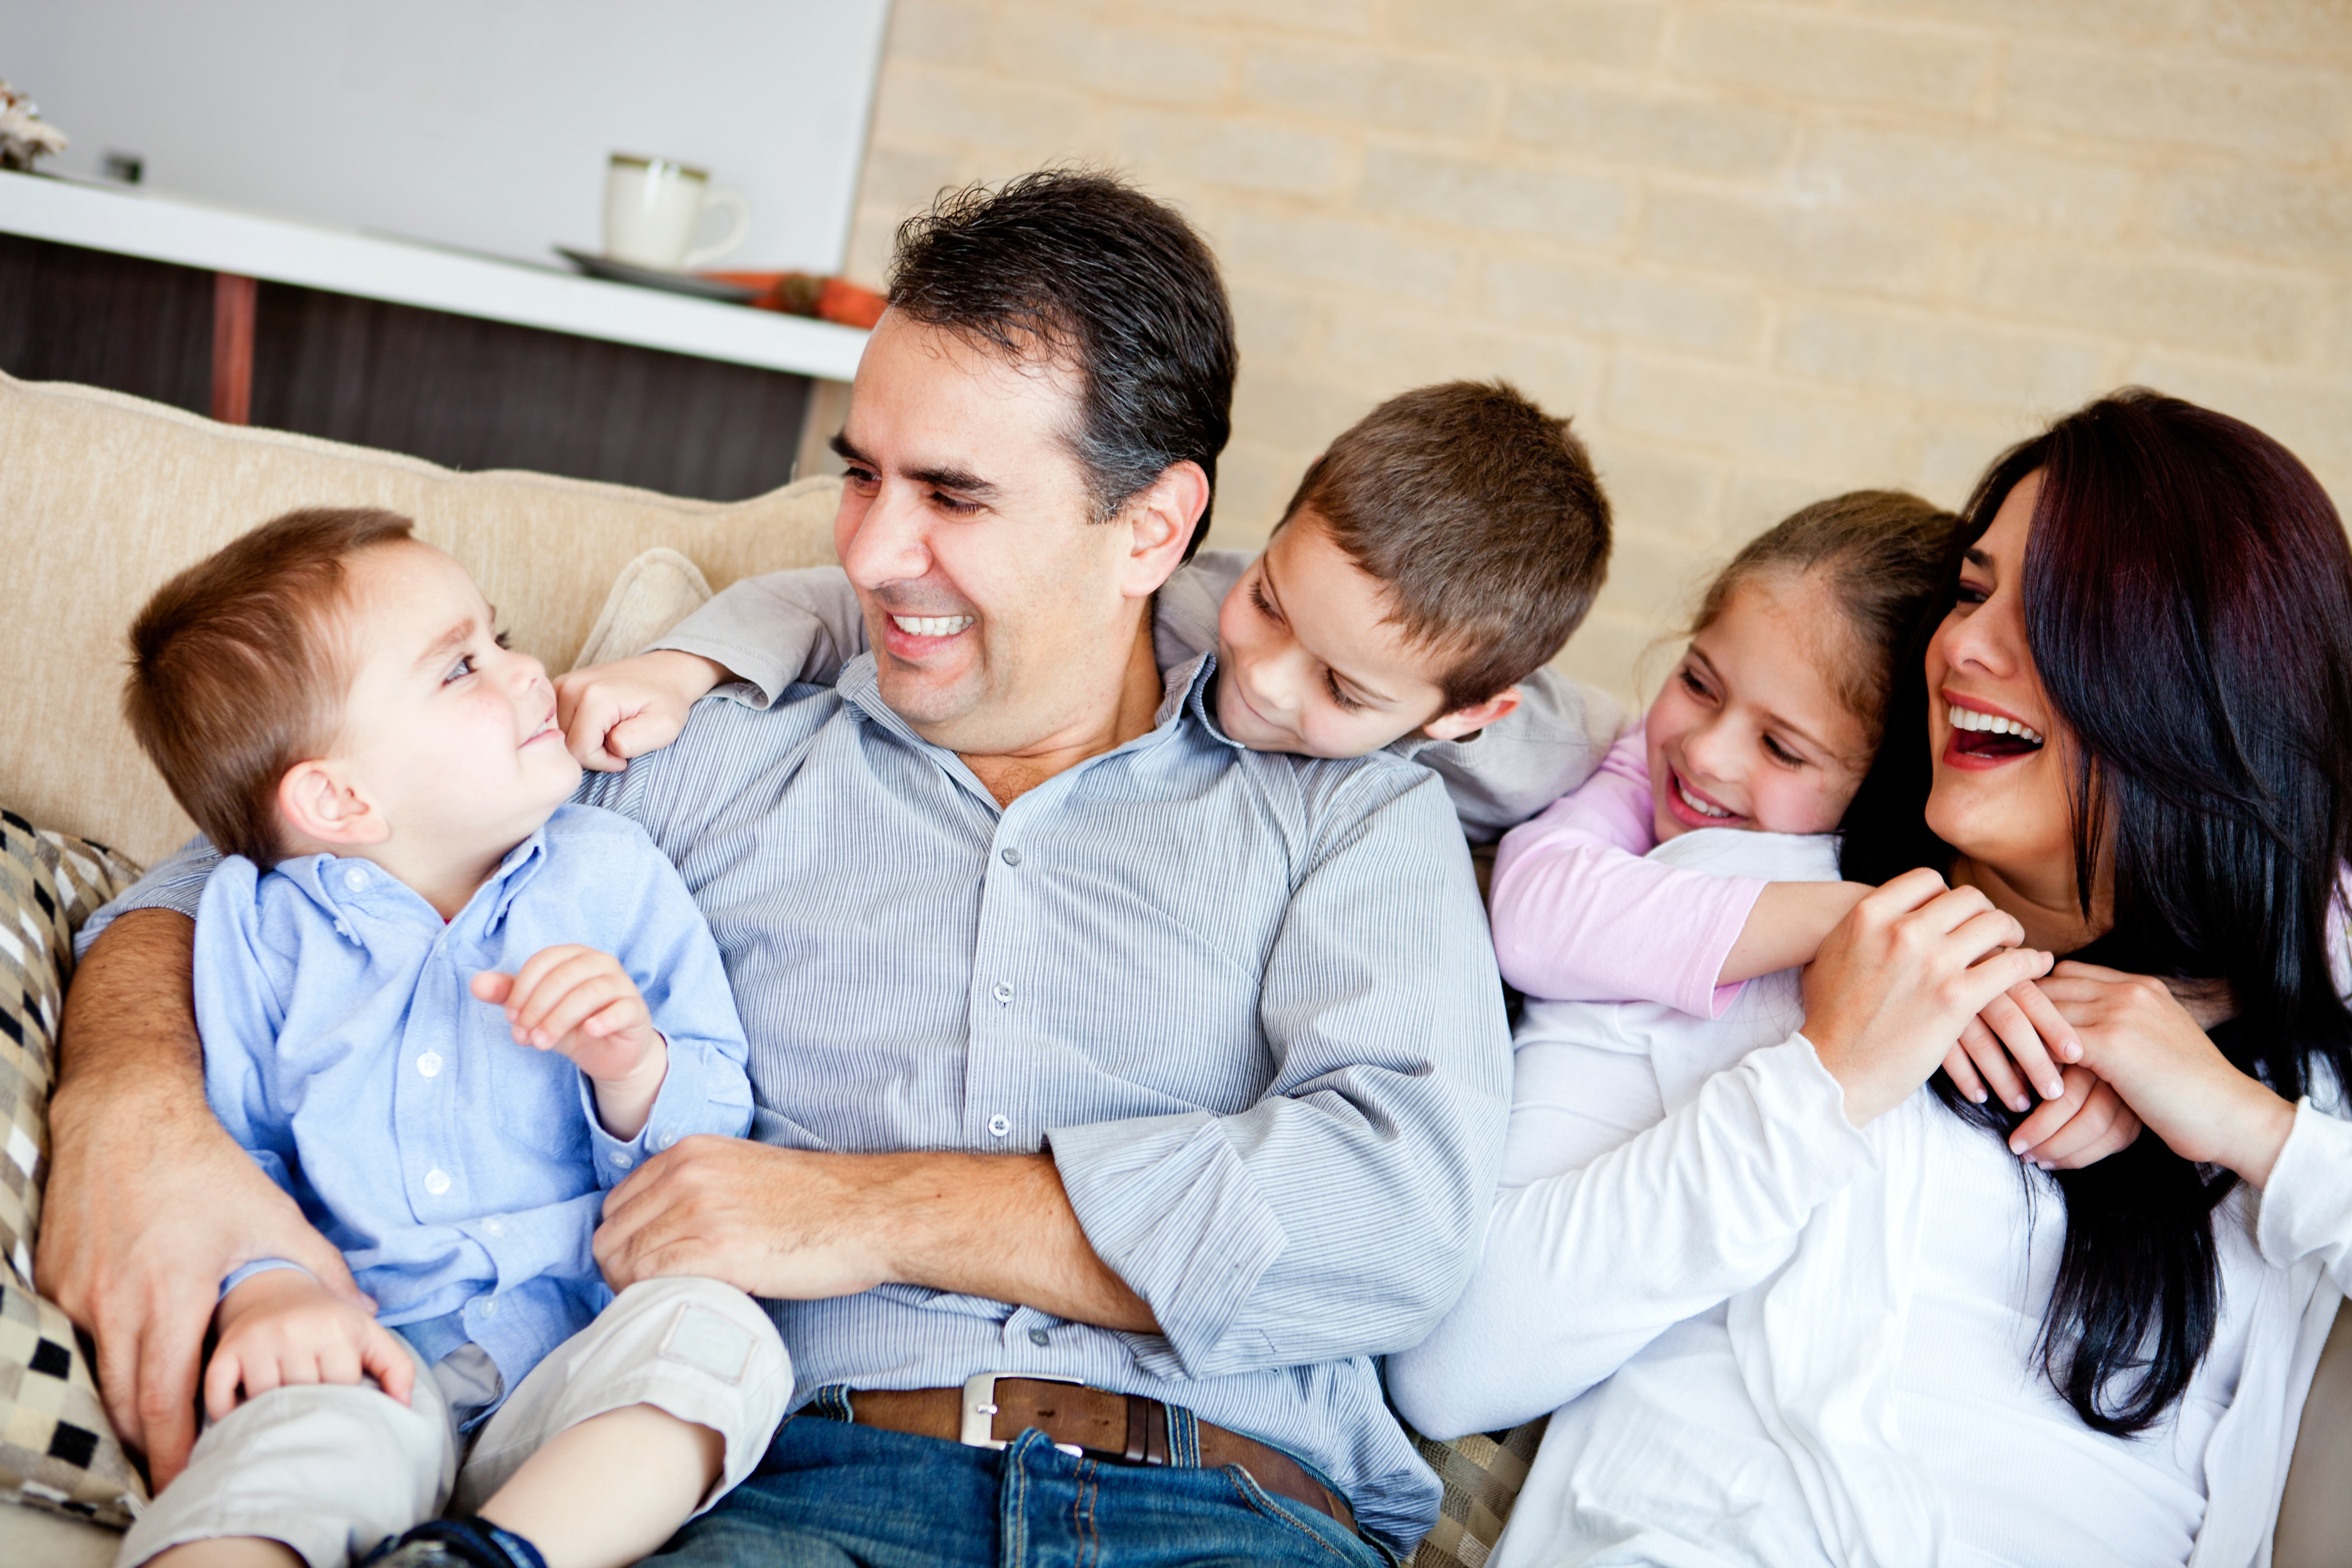 Happy and Comfortable Family Sitting Together on Couch